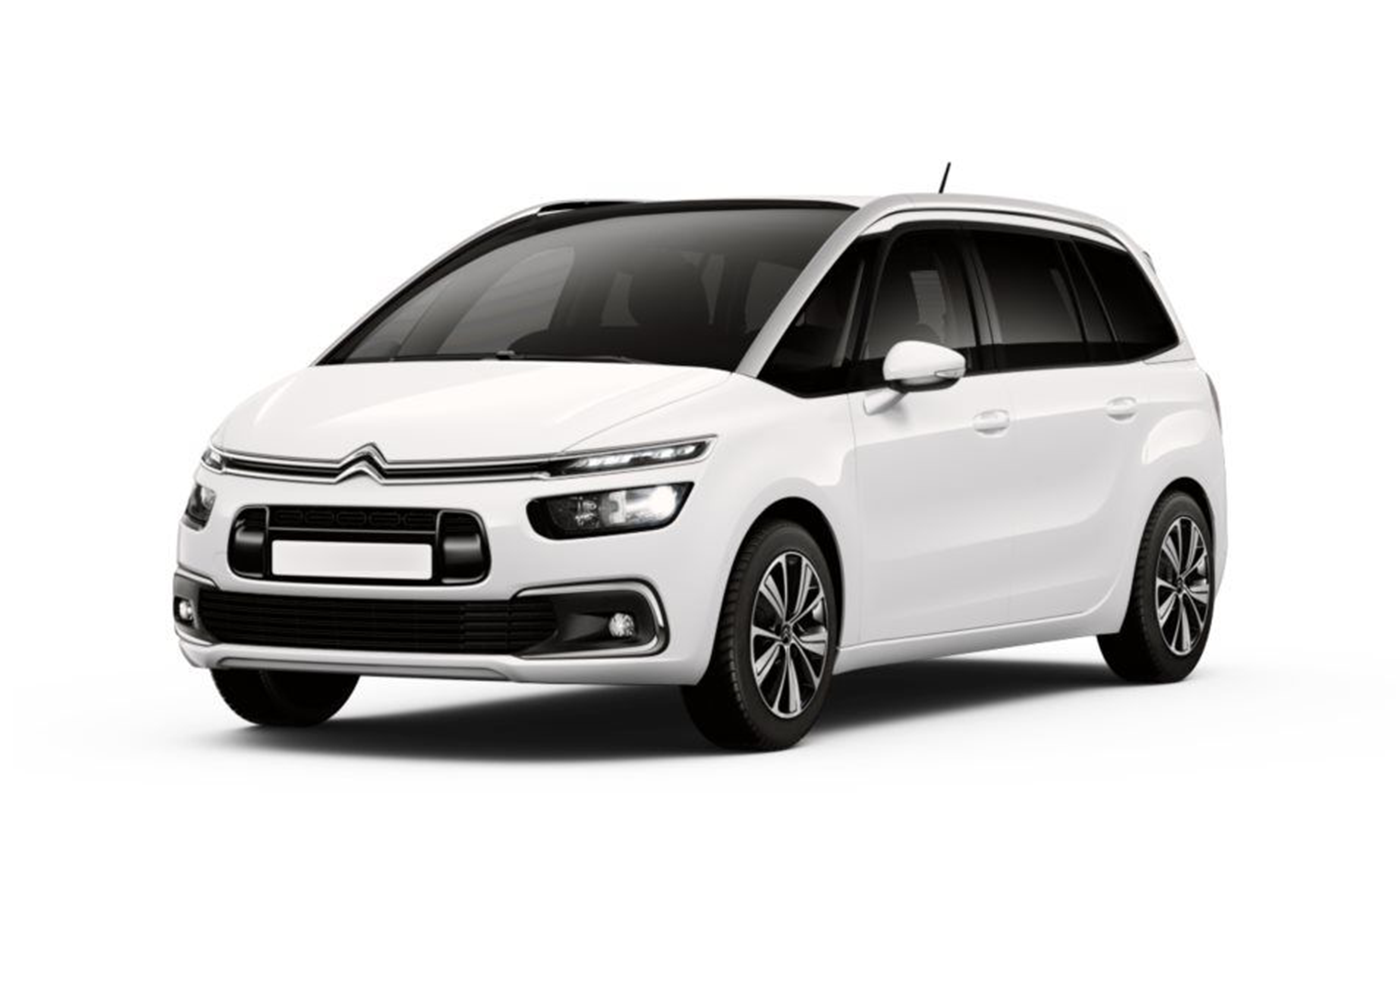 citroen grand c4 picasso bluehdi 120 s s eat6 feel bianco banquis km0 a soli 22400 su miacar. Black Bedroom Furniture Sets. Home Design Ideas